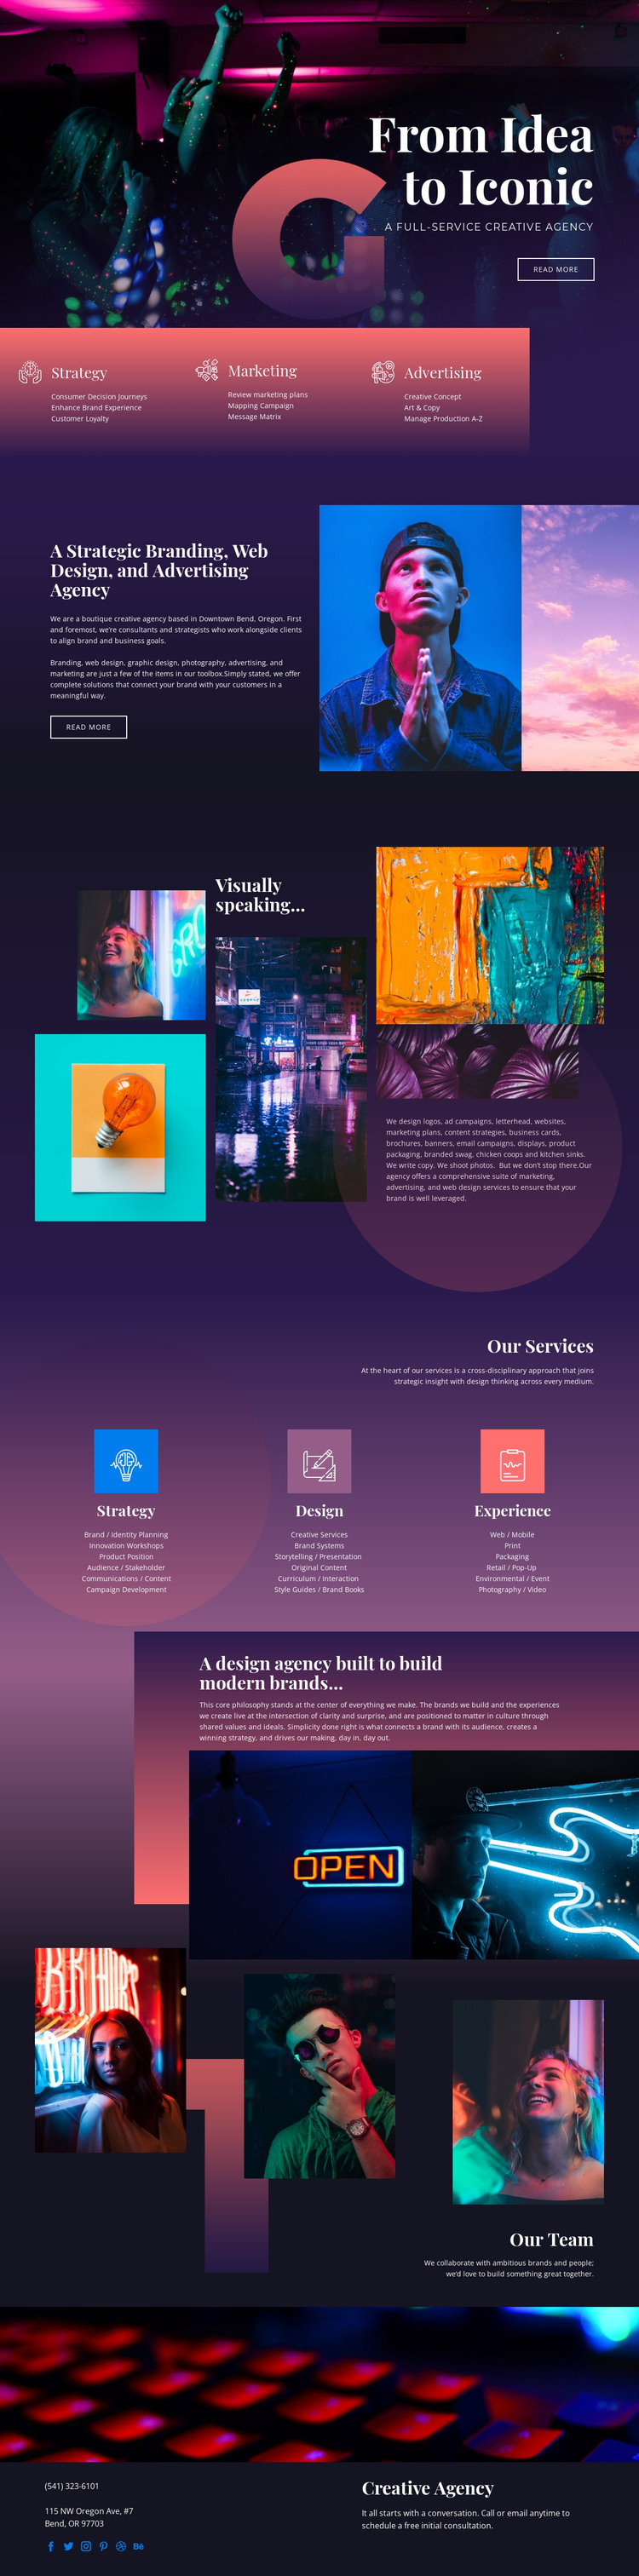 Iconic ideas of art HTML Template